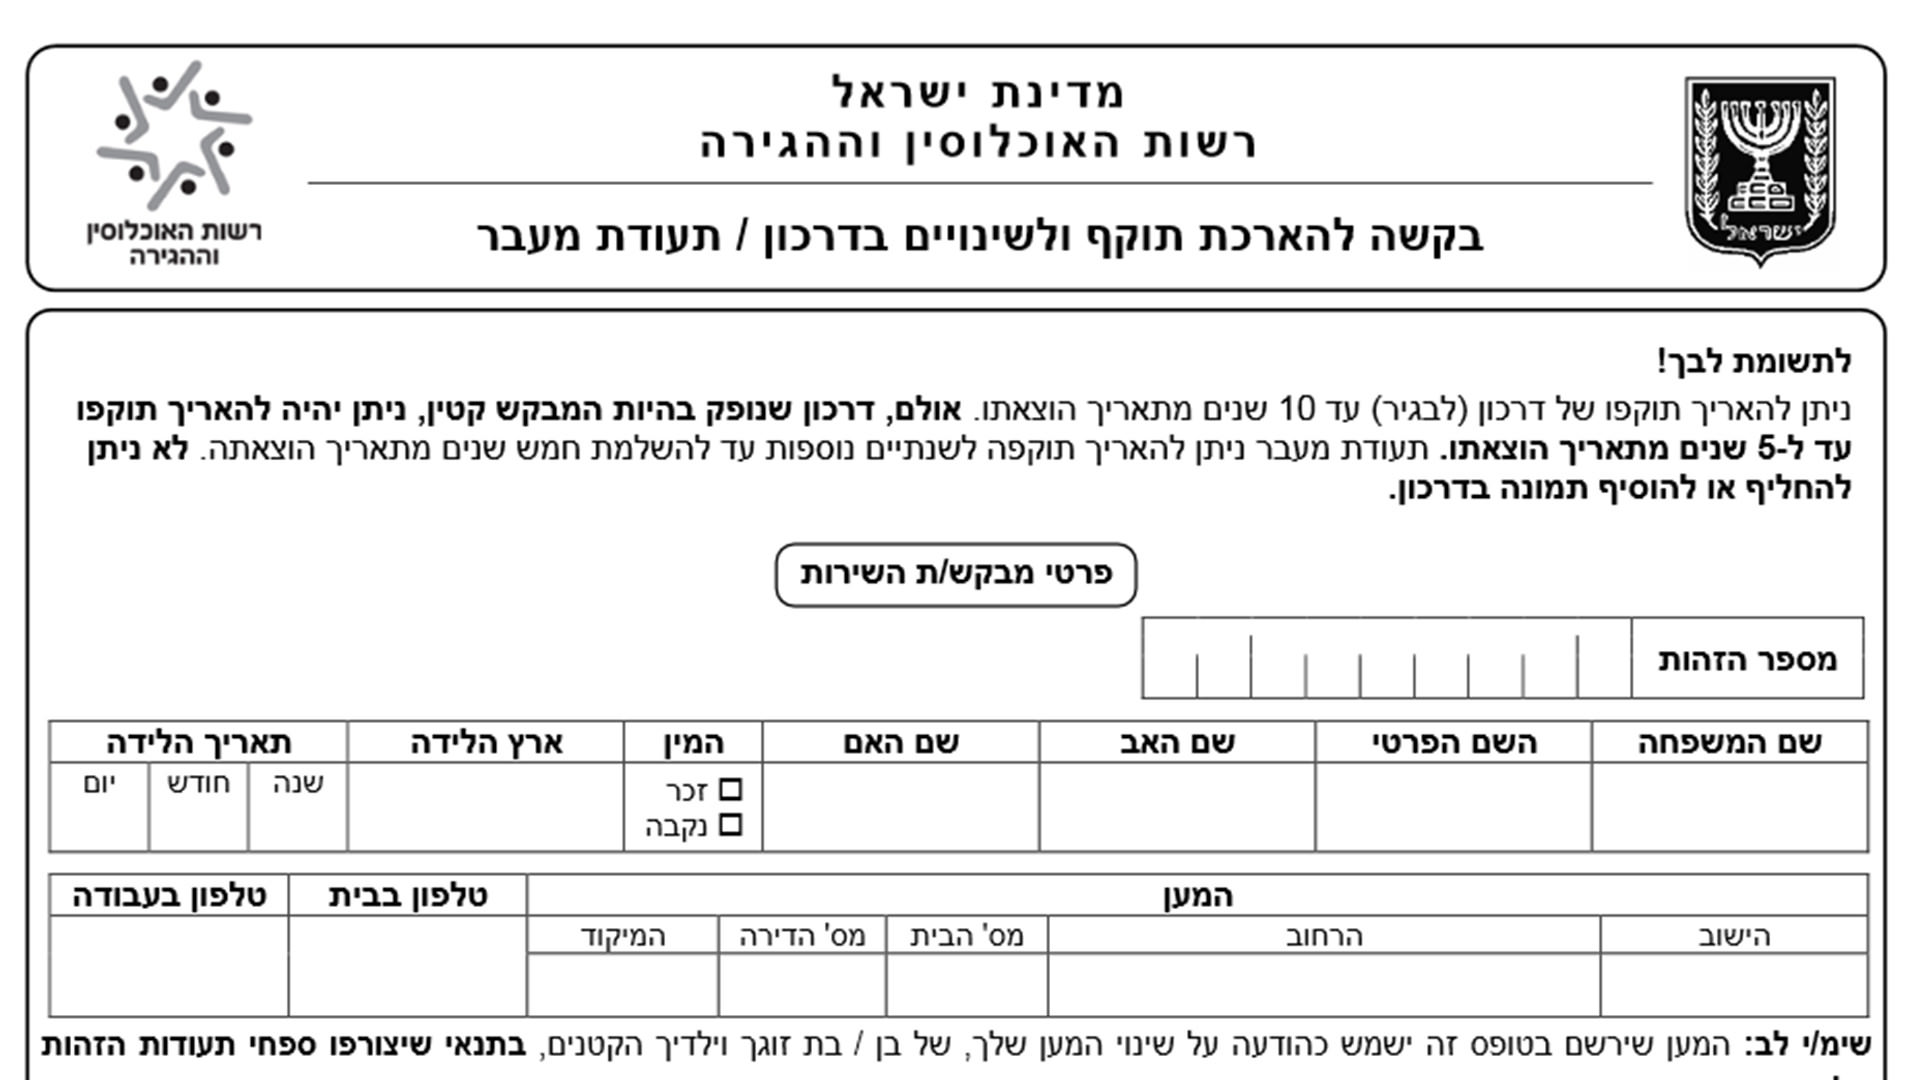 Israel Government Forms: Tofes 101, Tax, Misrad Hapnim